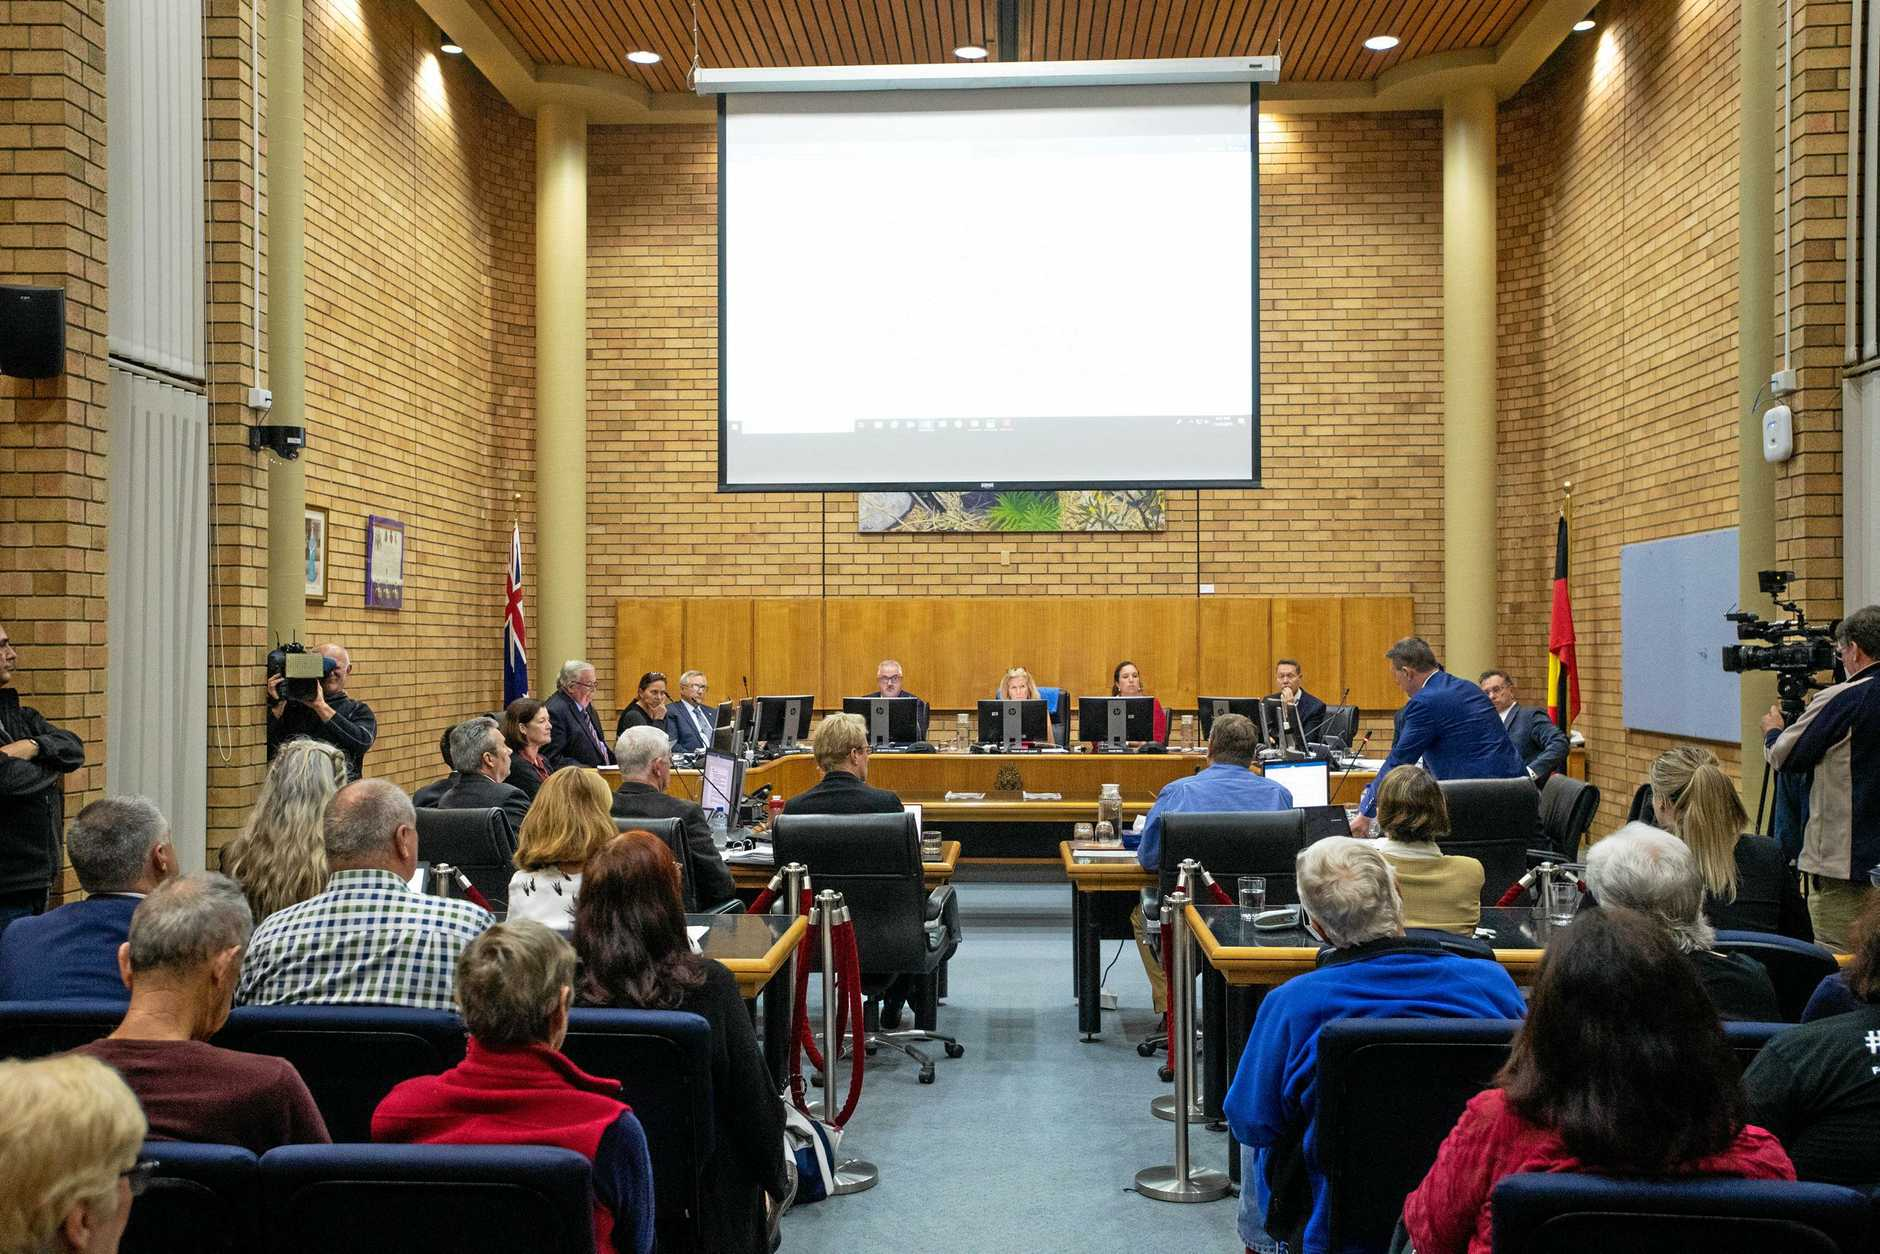 Council Meeting Re Cultural and Civic space development.councillors. Coffs Habour City Council. 11 July 2019